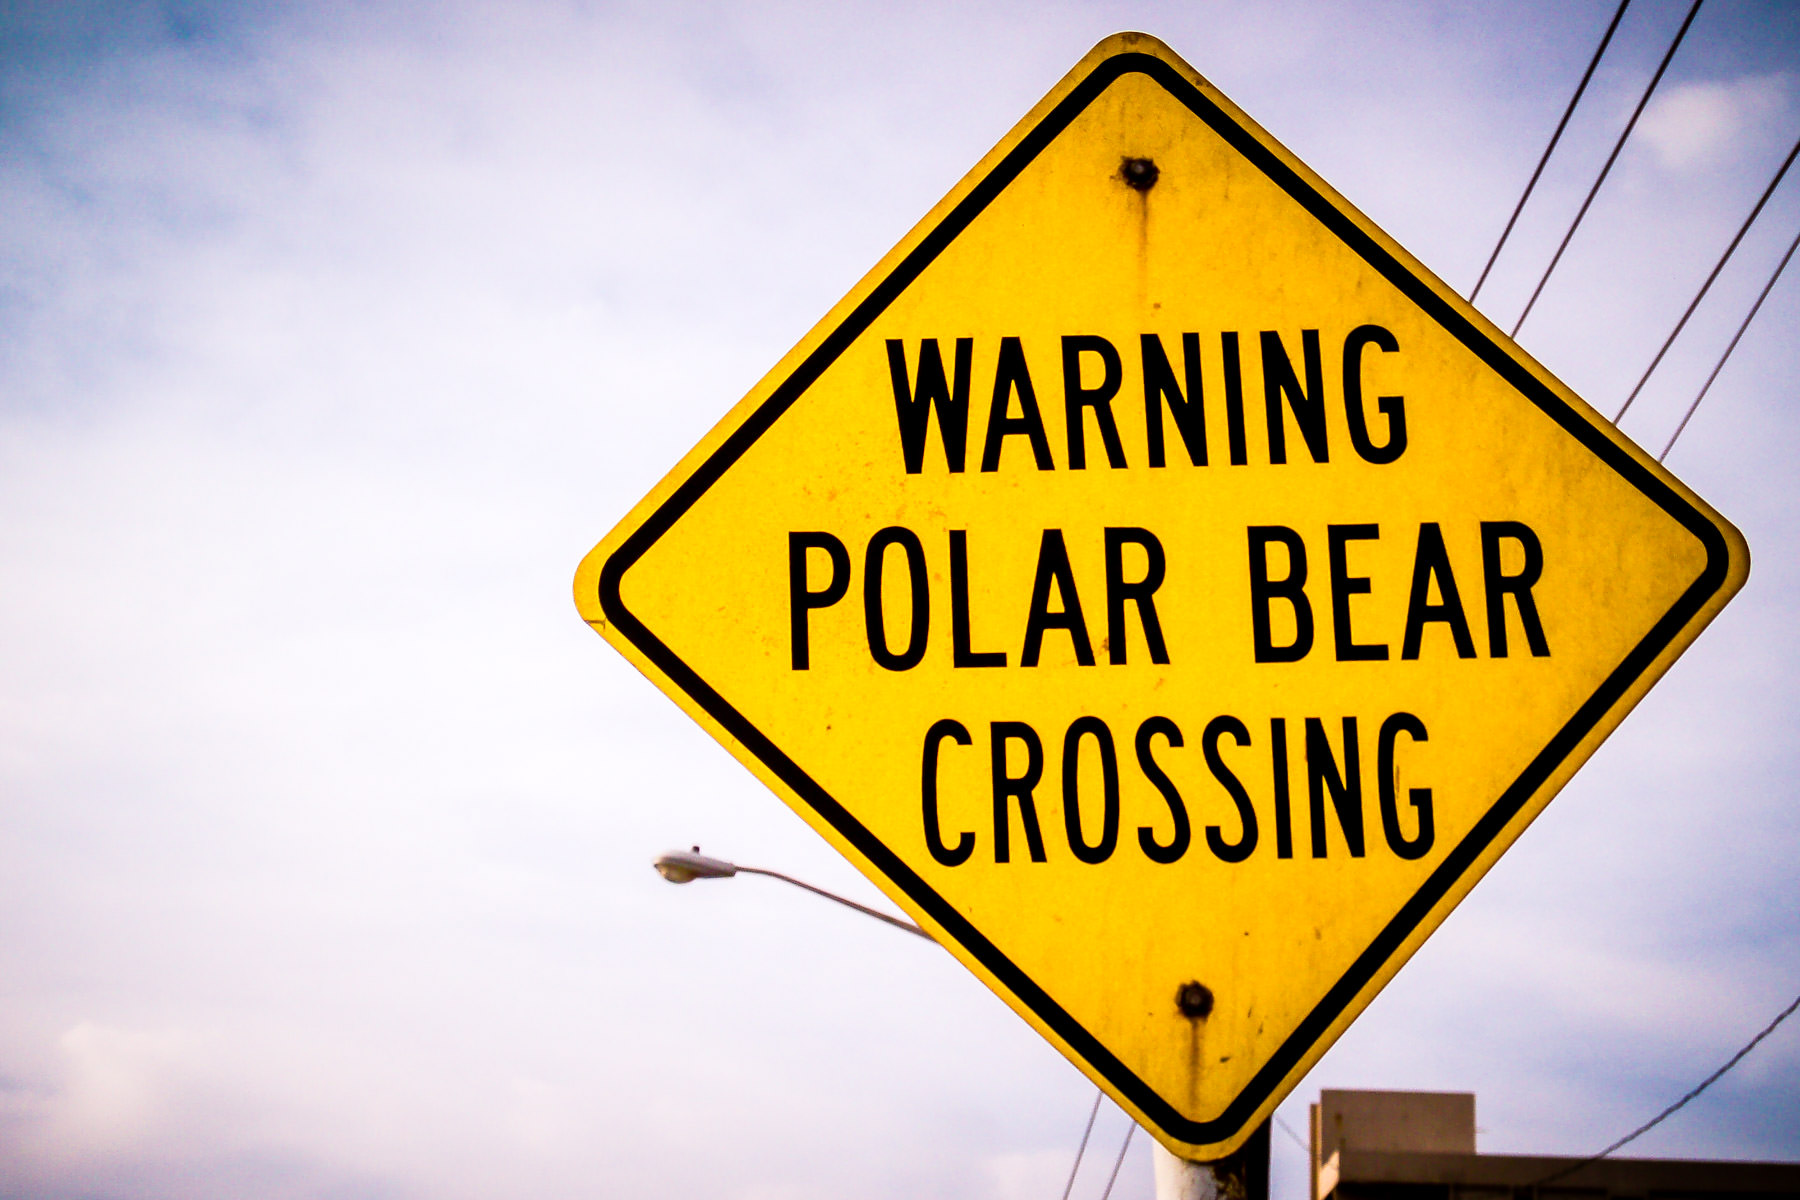 An out-of-place street sign spotted in South Padre Island, Texas.